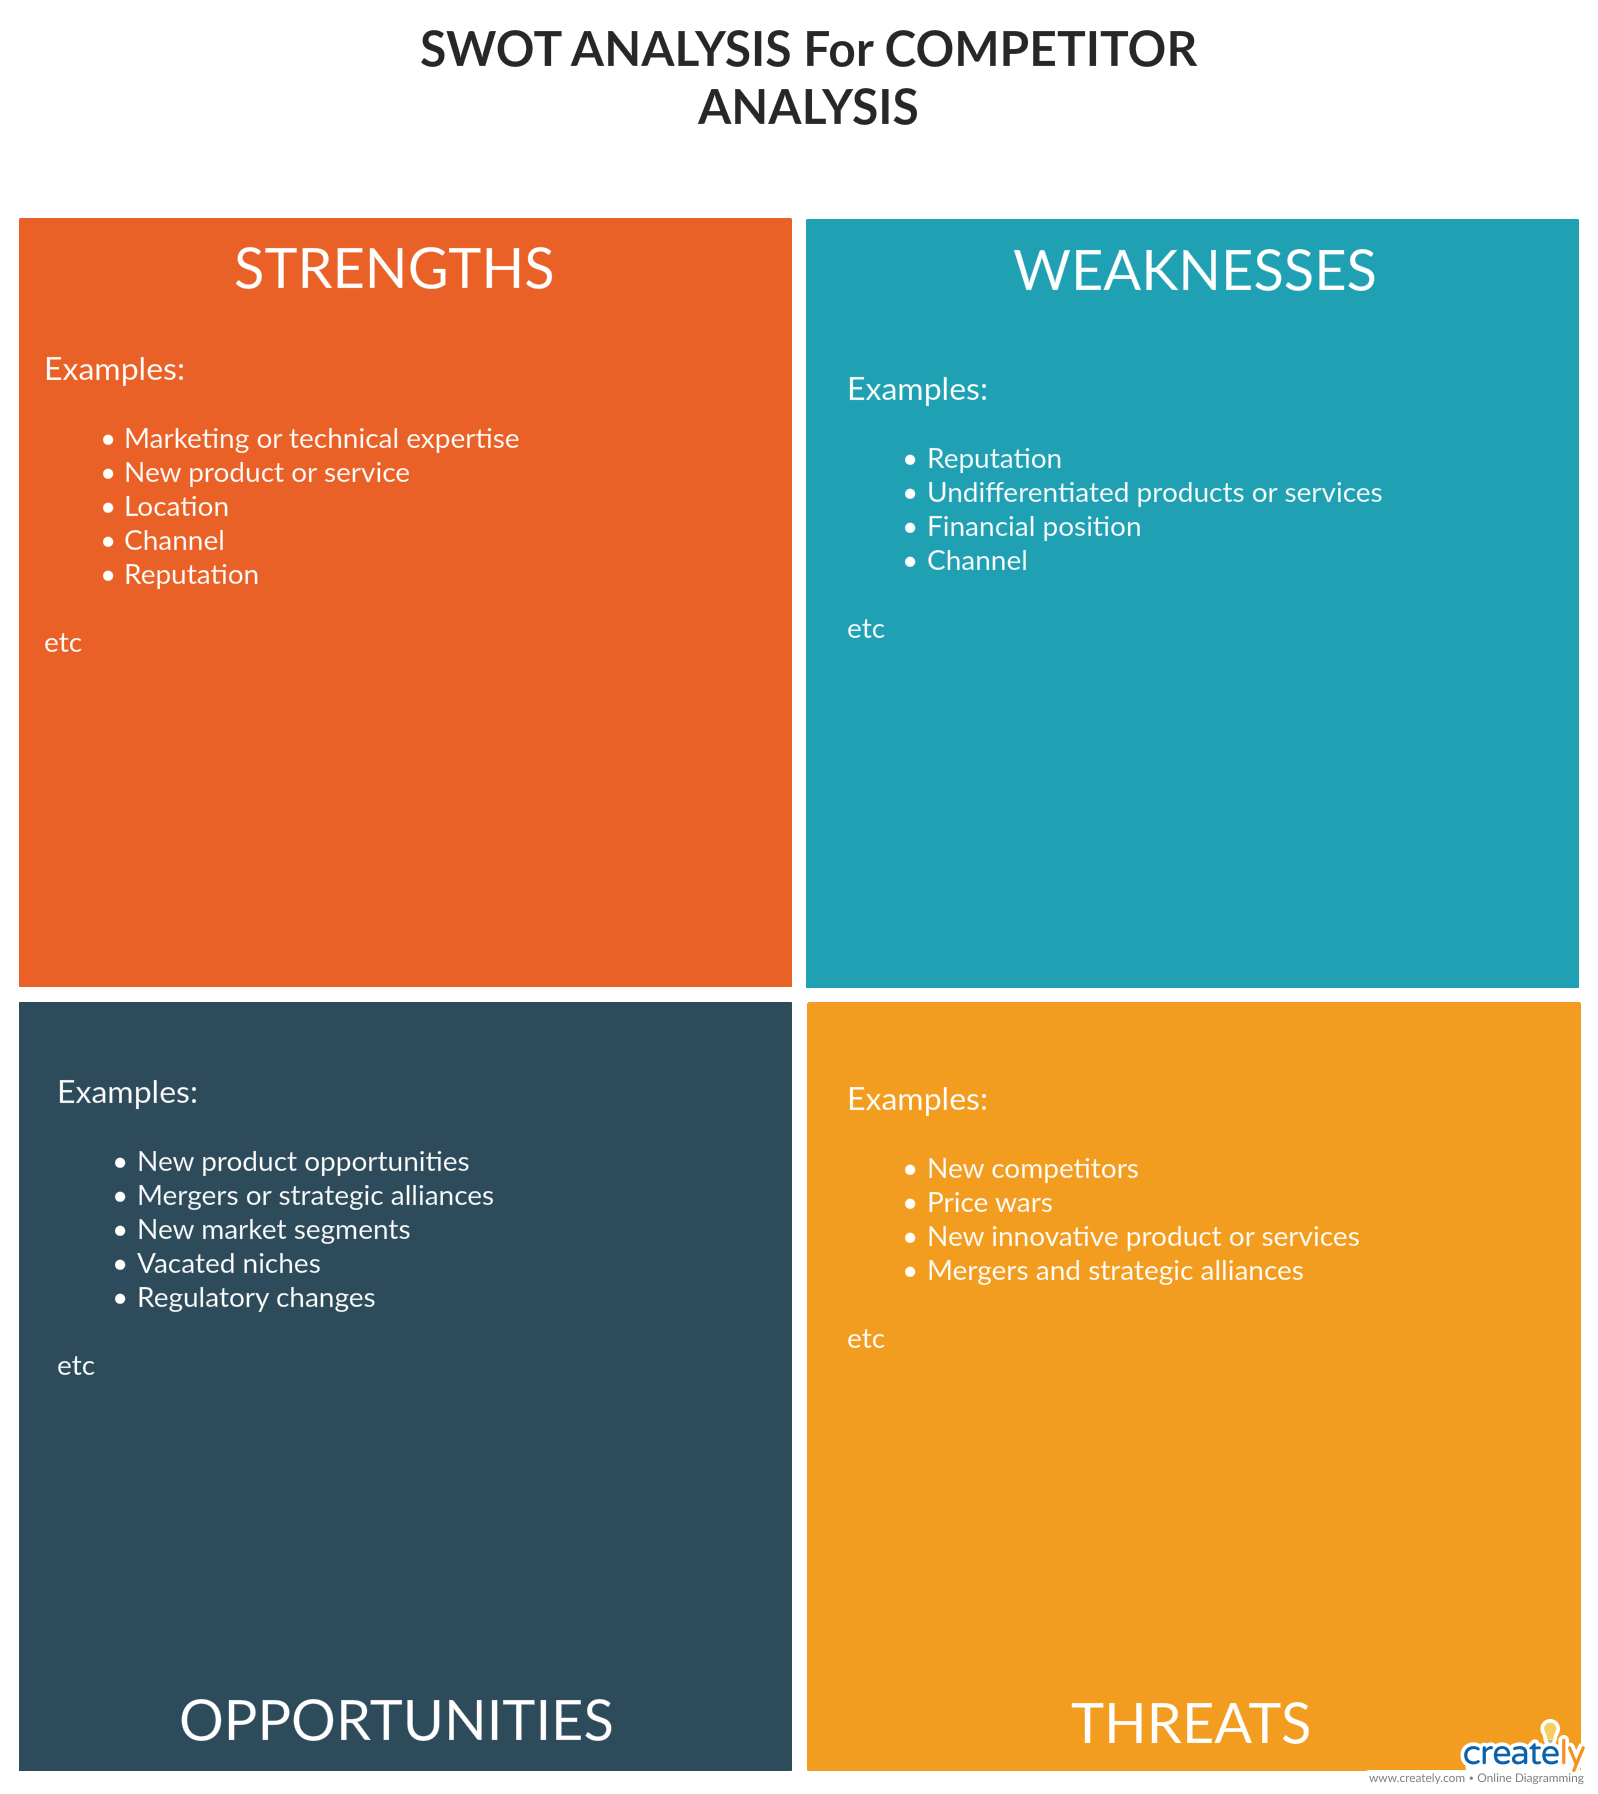 Swot Analysis What Why And How To Use Them Effectively Creately Blog Competitor Analysis Social Media Strategy Plan Social Media Strategies